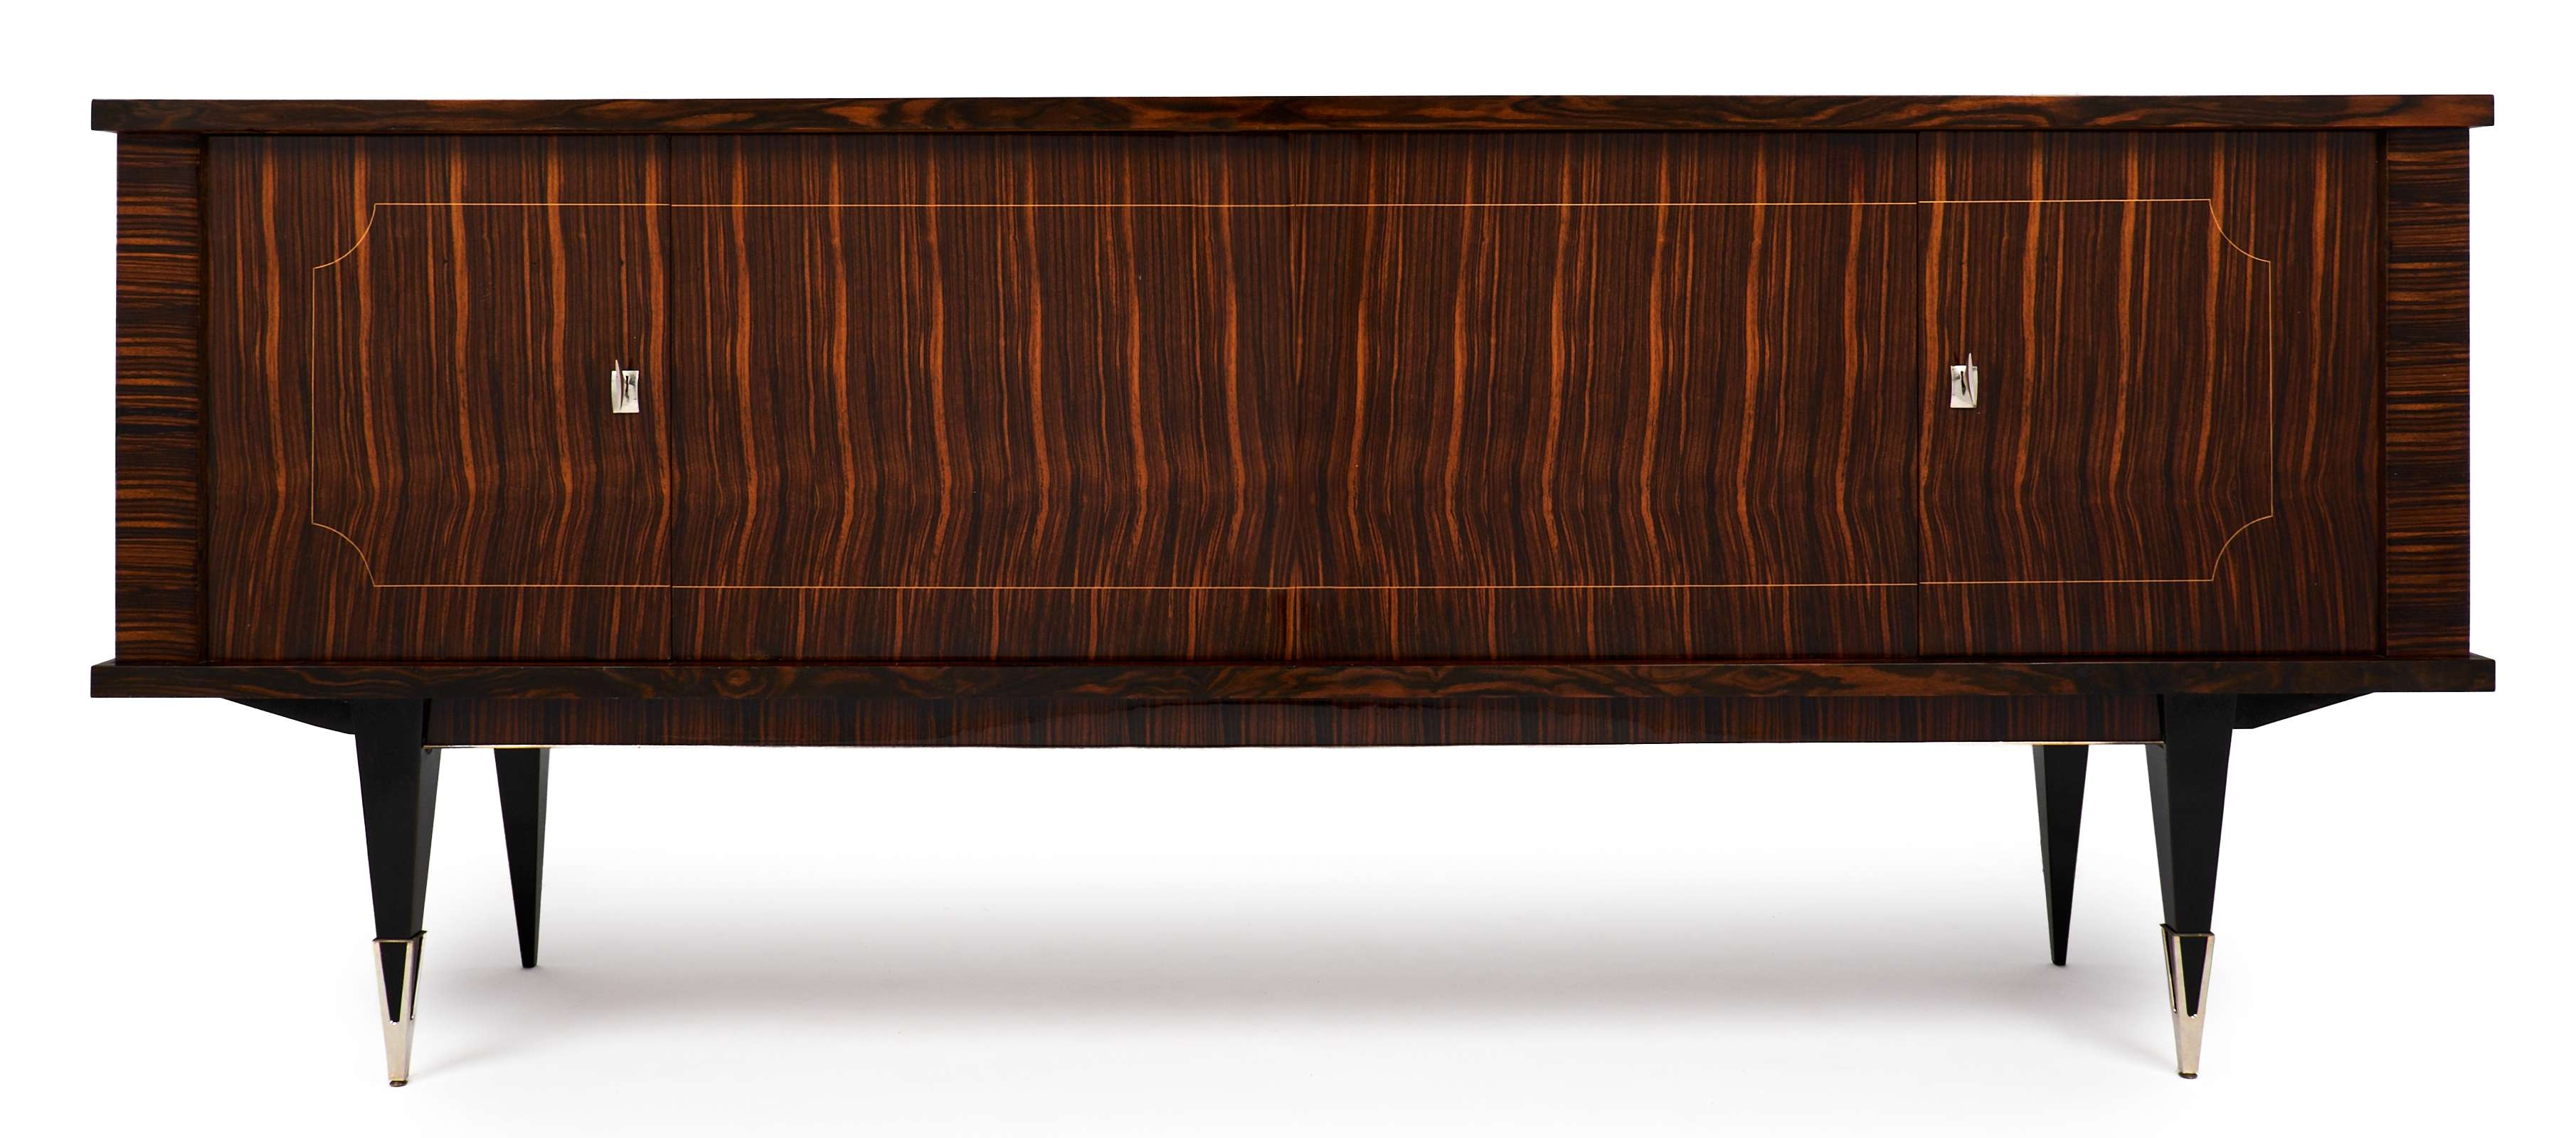 Mid Century Modern French Macassar Sideboard – Jean Marc Fray Inside Mid Century Modern Sideboards (View 12 of 20)